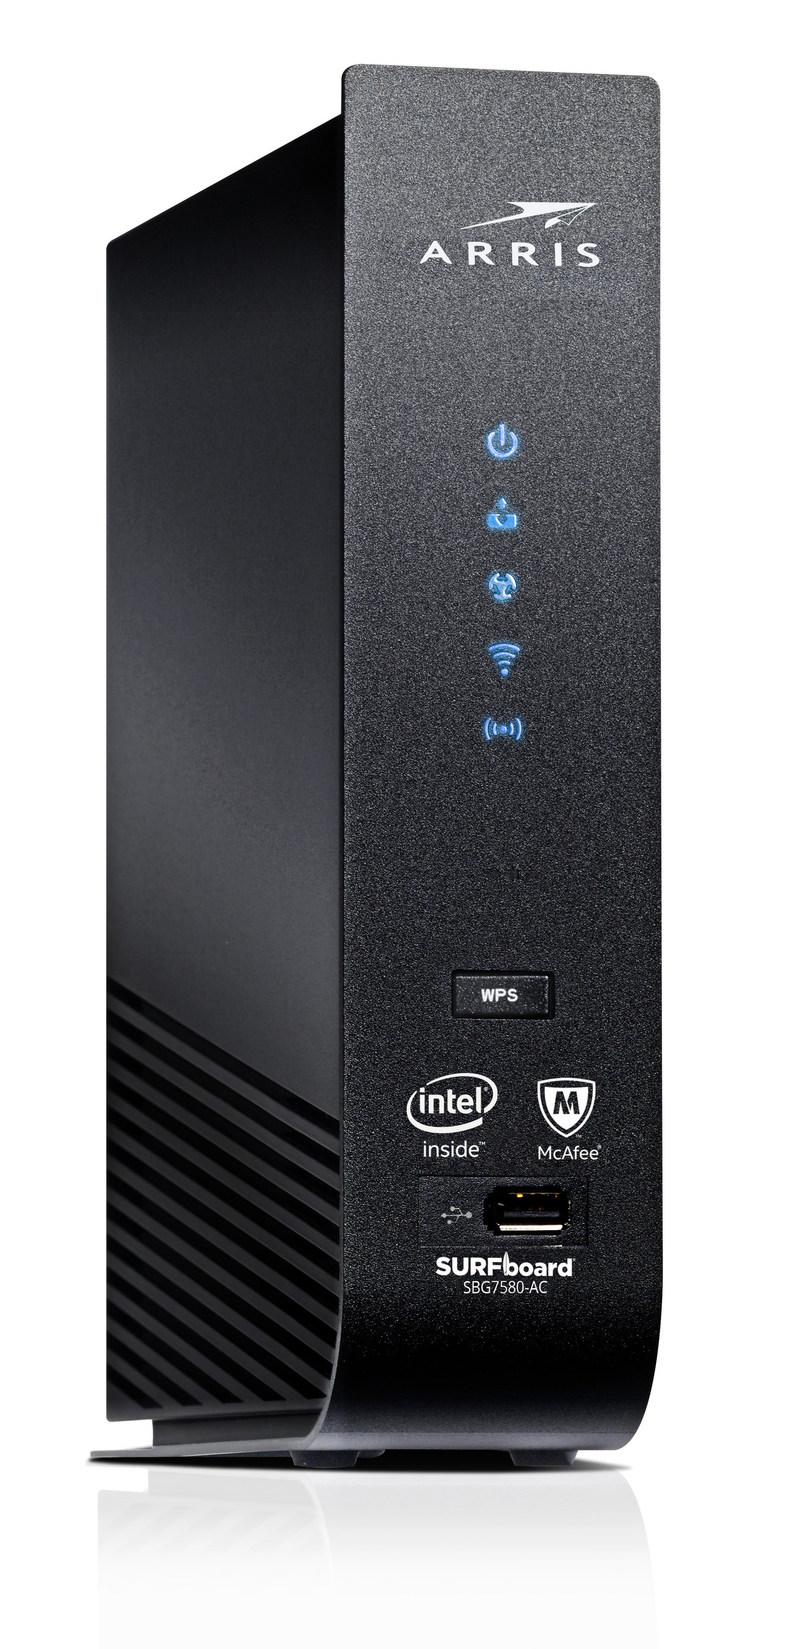 ARRIS SURFboard® SBG7580-AC with ARRIS Secure Home Internet by McAfee delivers cybersecurity protection to devices in the home – including IoT devices – in a single product